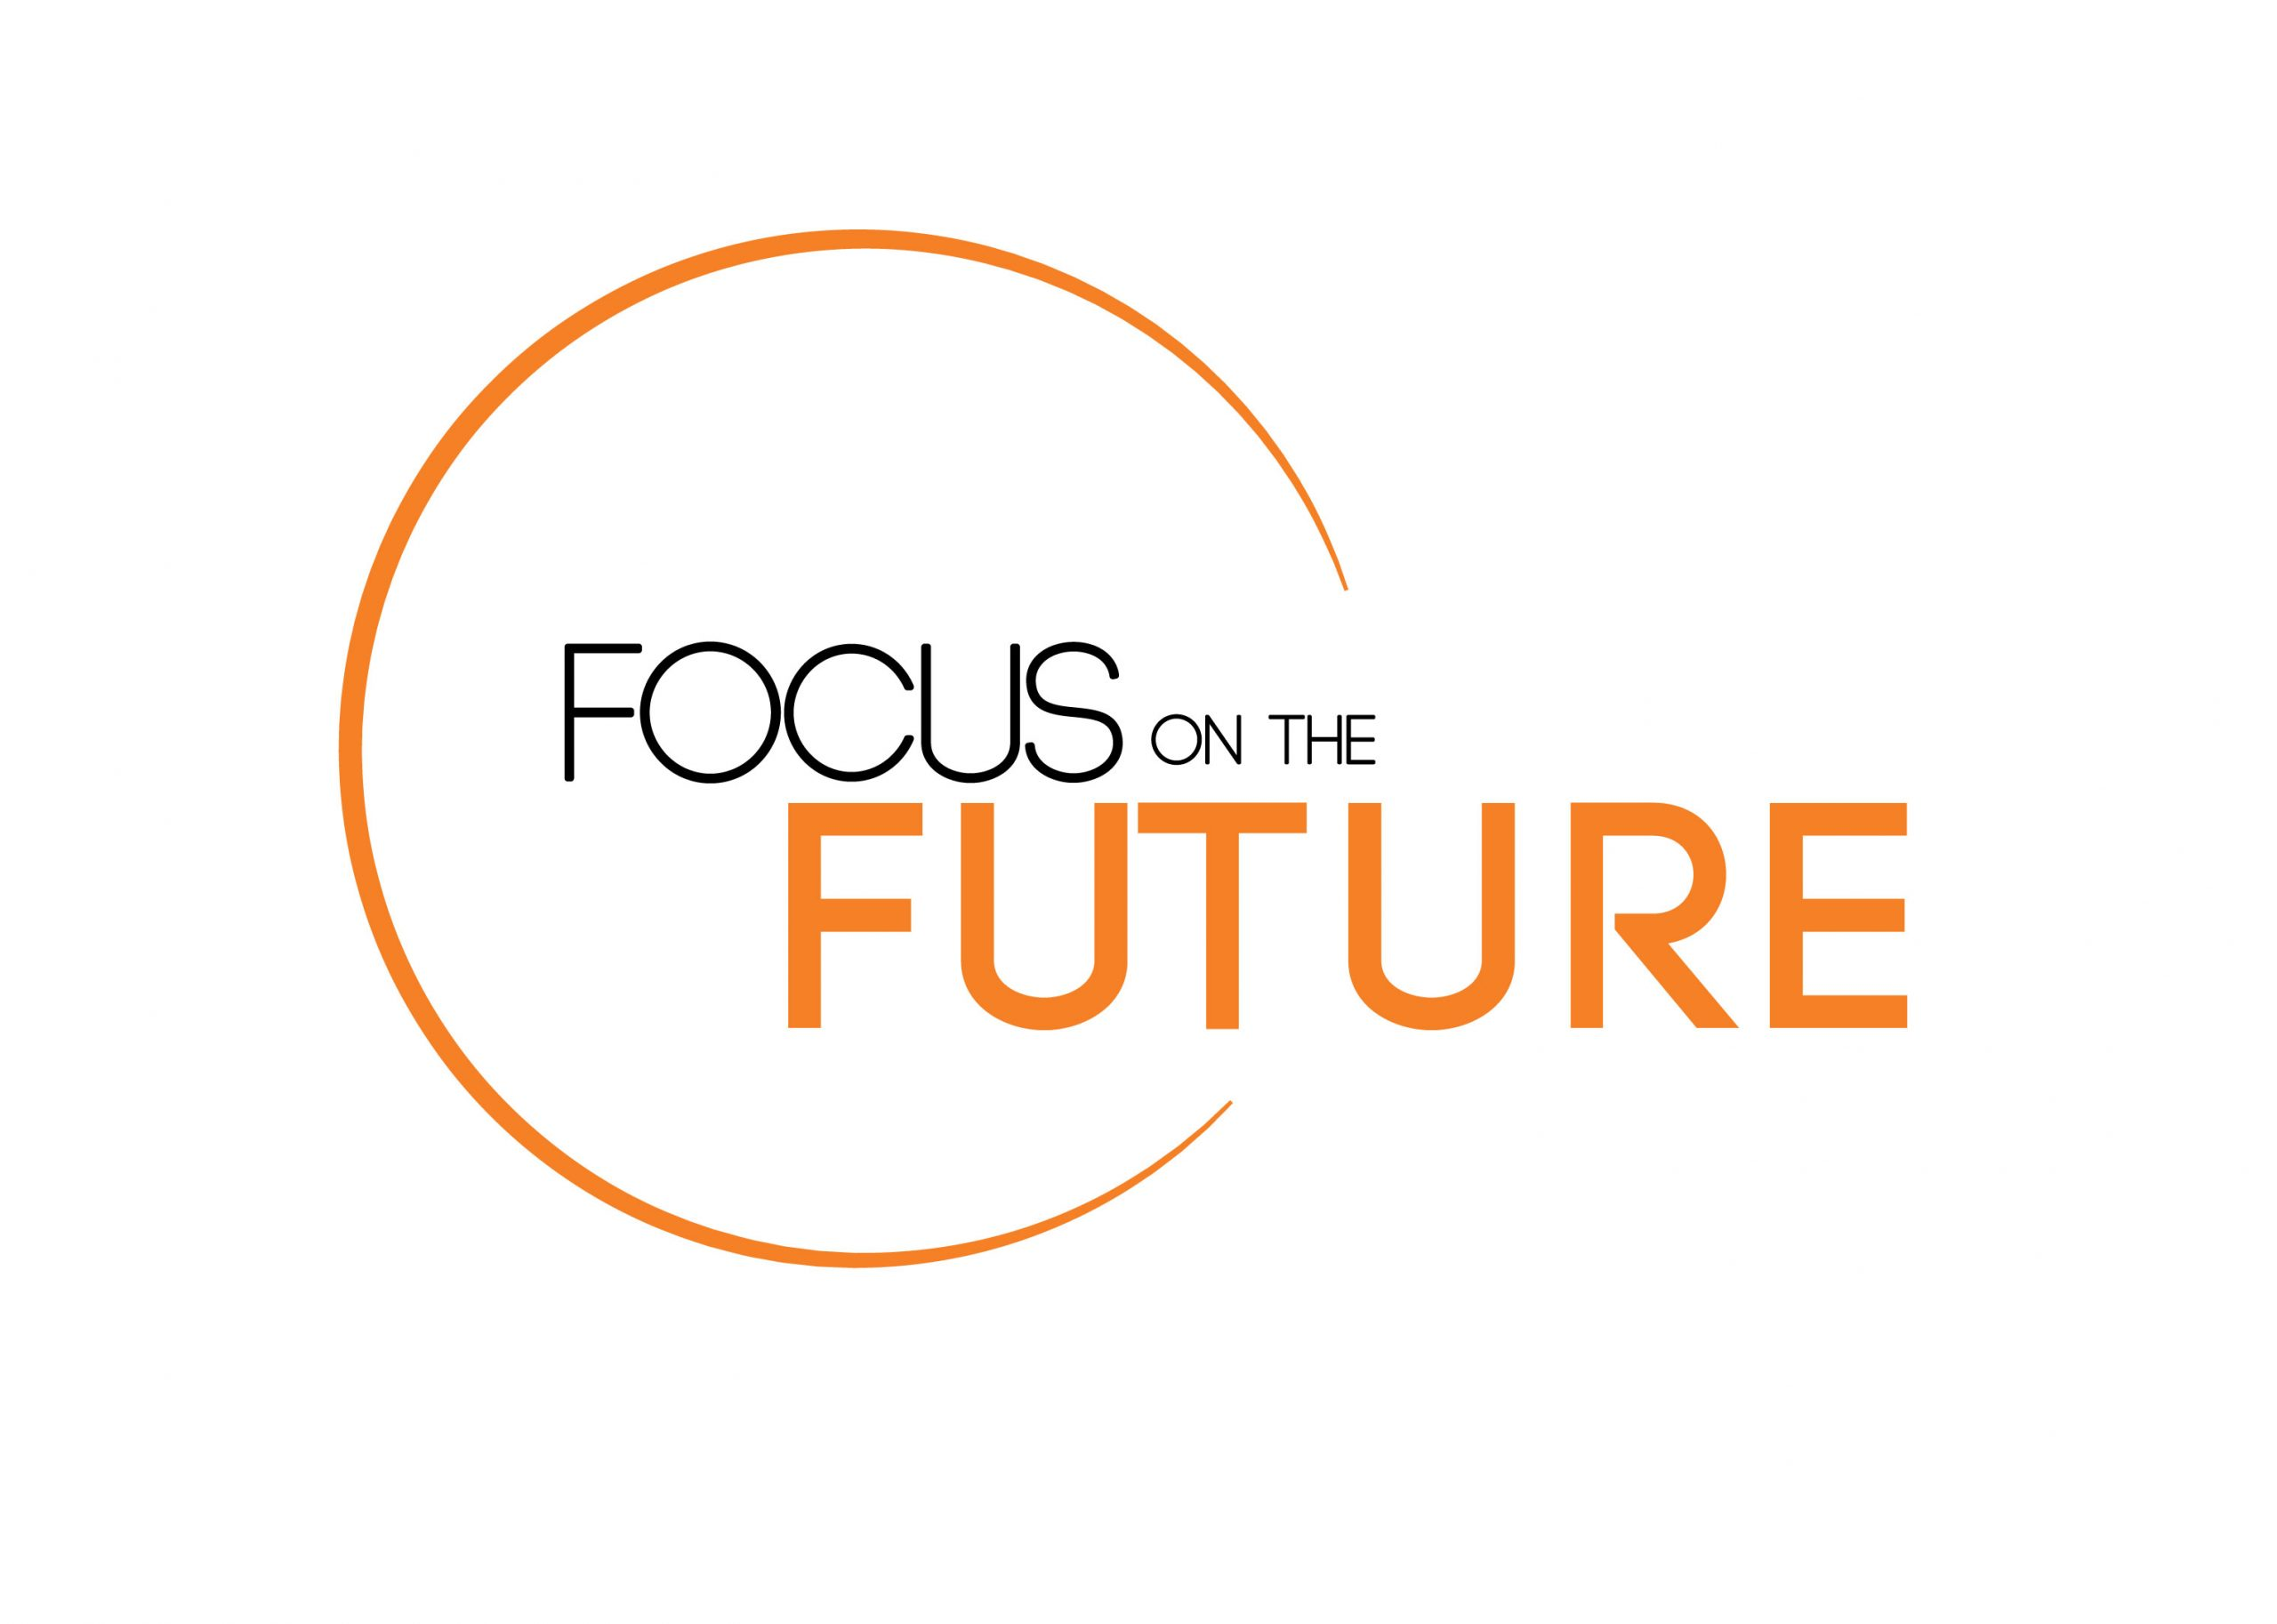 Focus on the Future Organization Continues to Meet